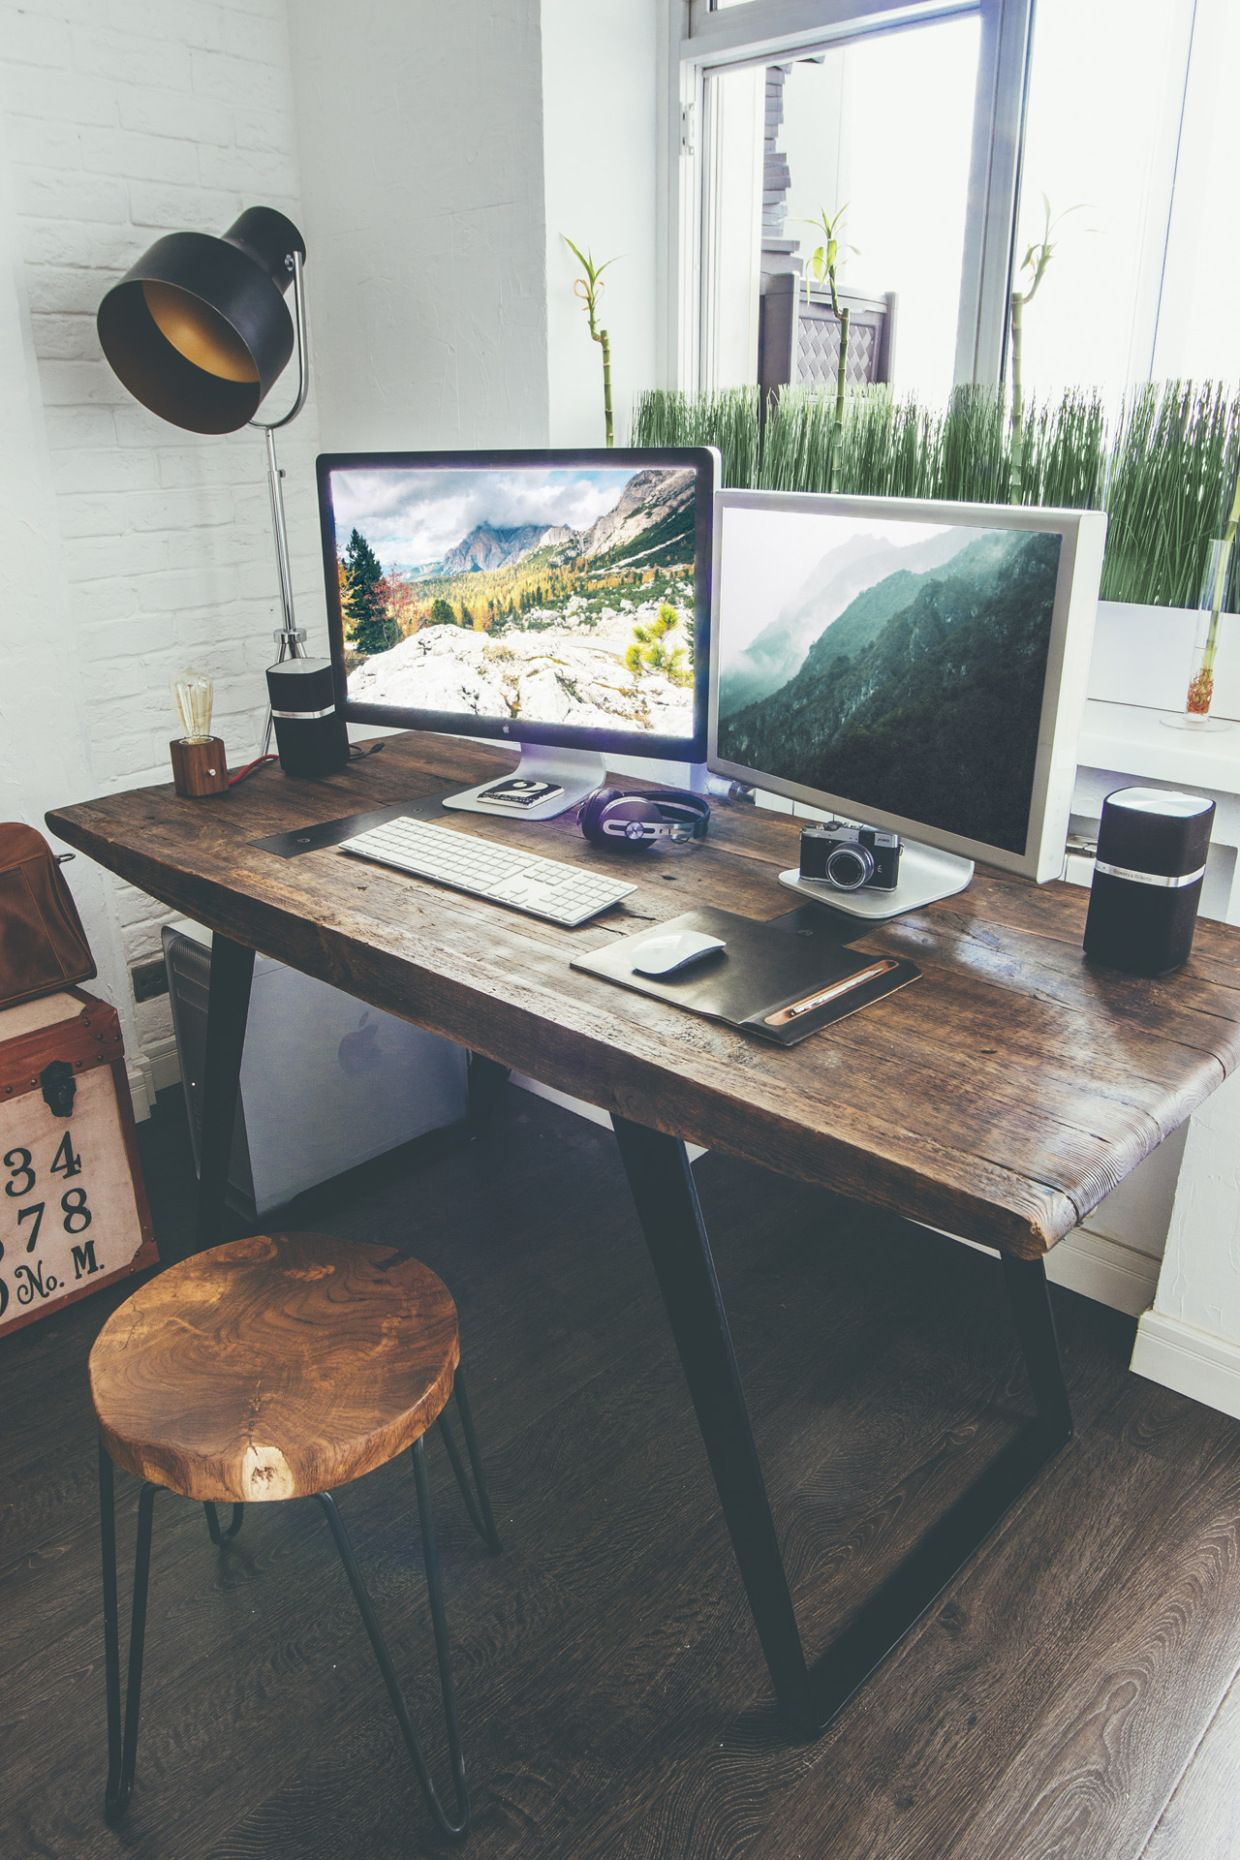 Charmant Rustic Wood Desk With Wide Workspace In Studio Office.